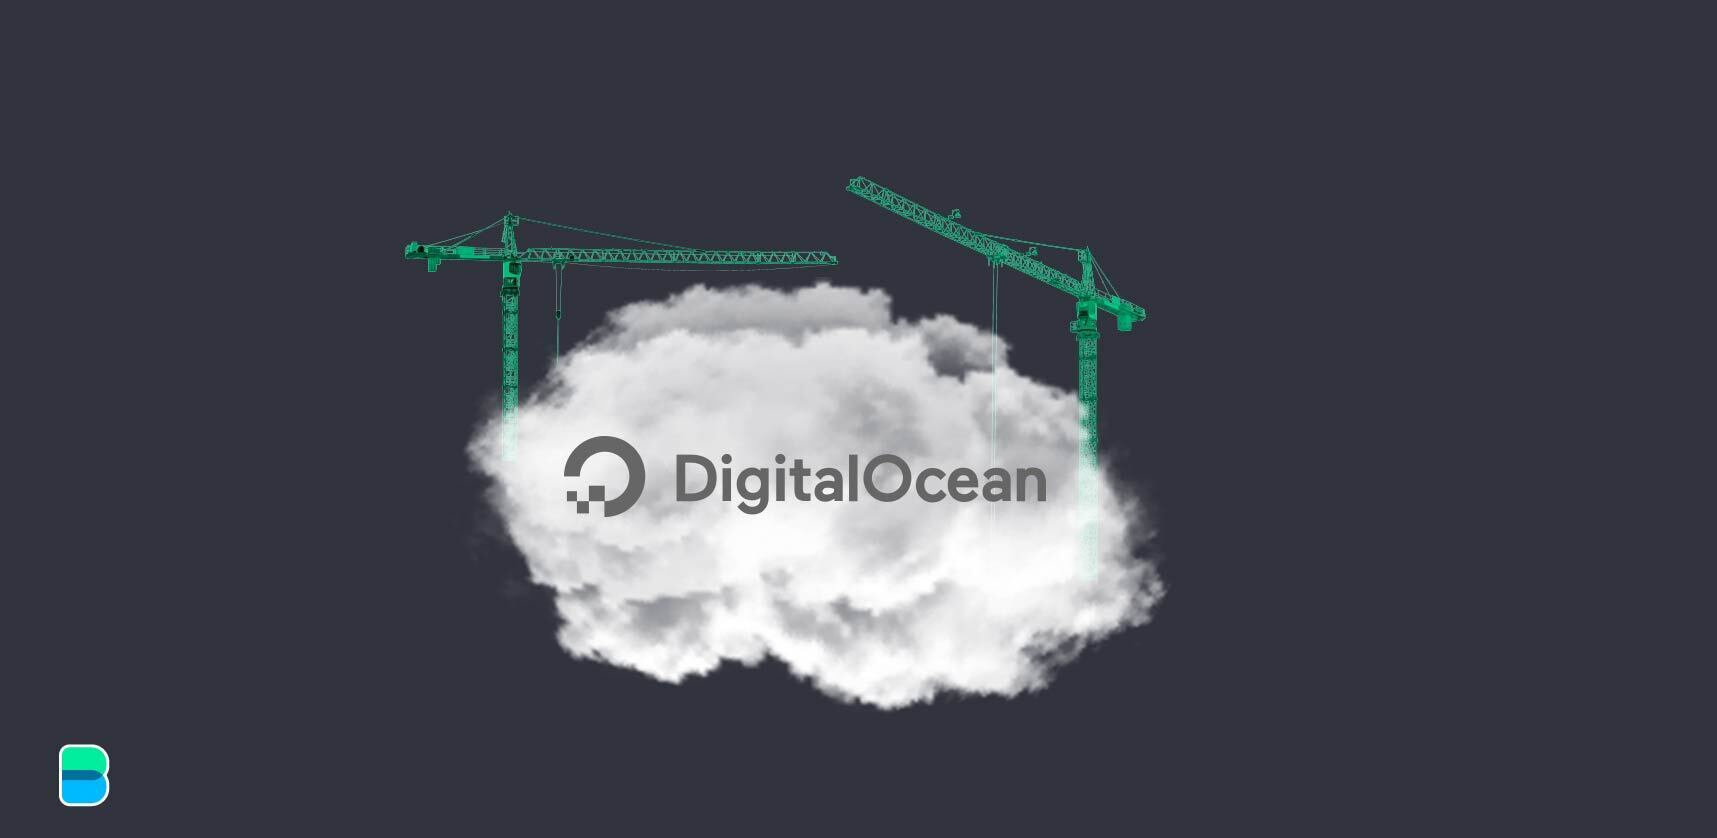 DigitalOcean to build more clouds with $5b IPO